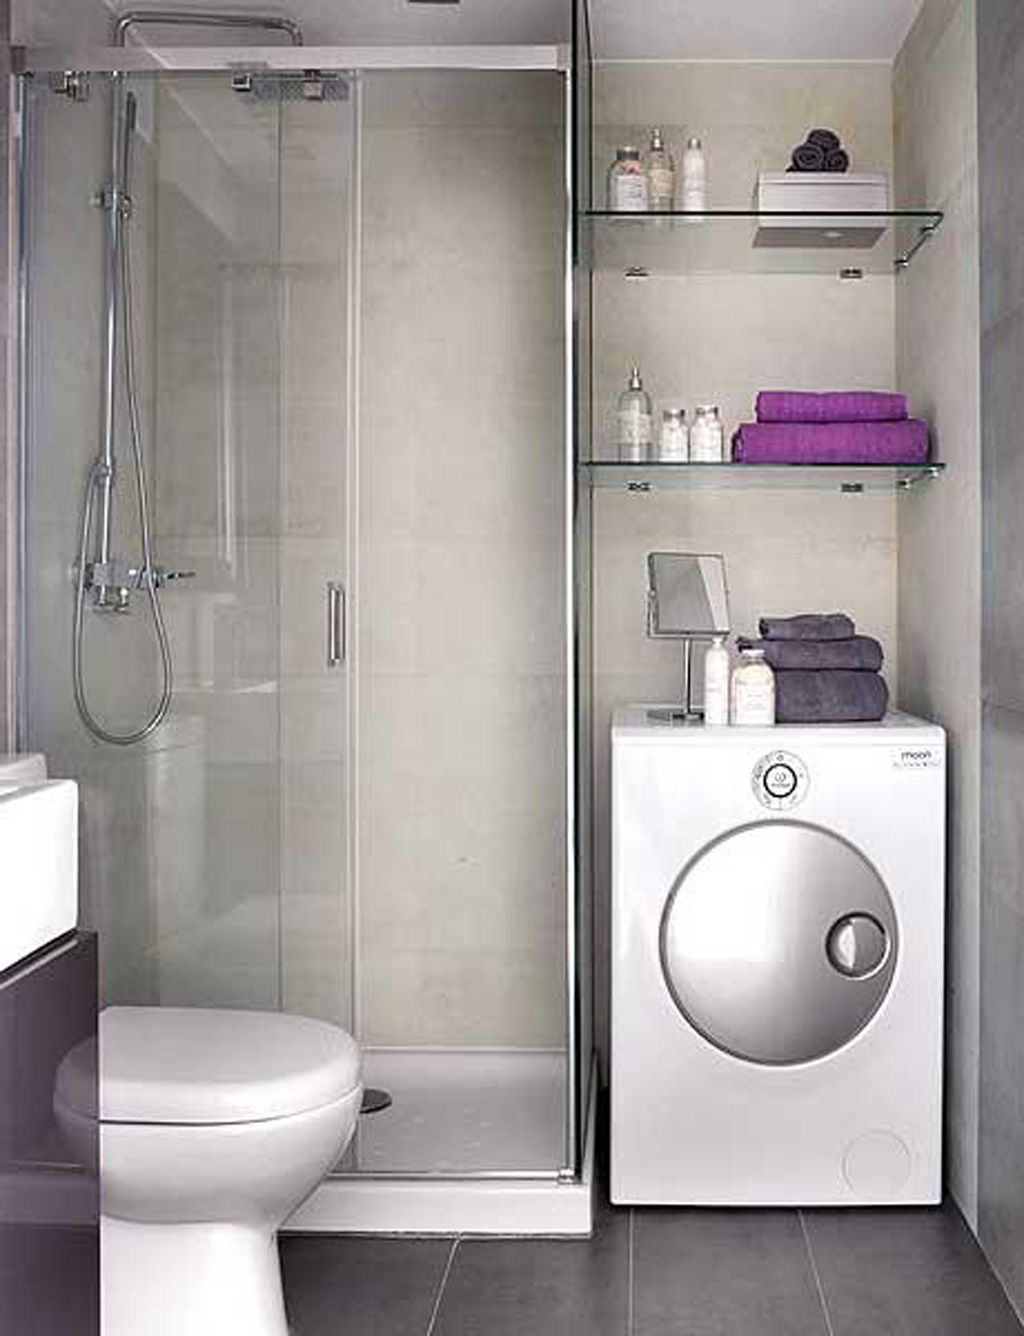 Best Modern Bathroom Design Ideas Space Saving Bathroom - Modern bathroom designs for small spaces for small bathroom ideas